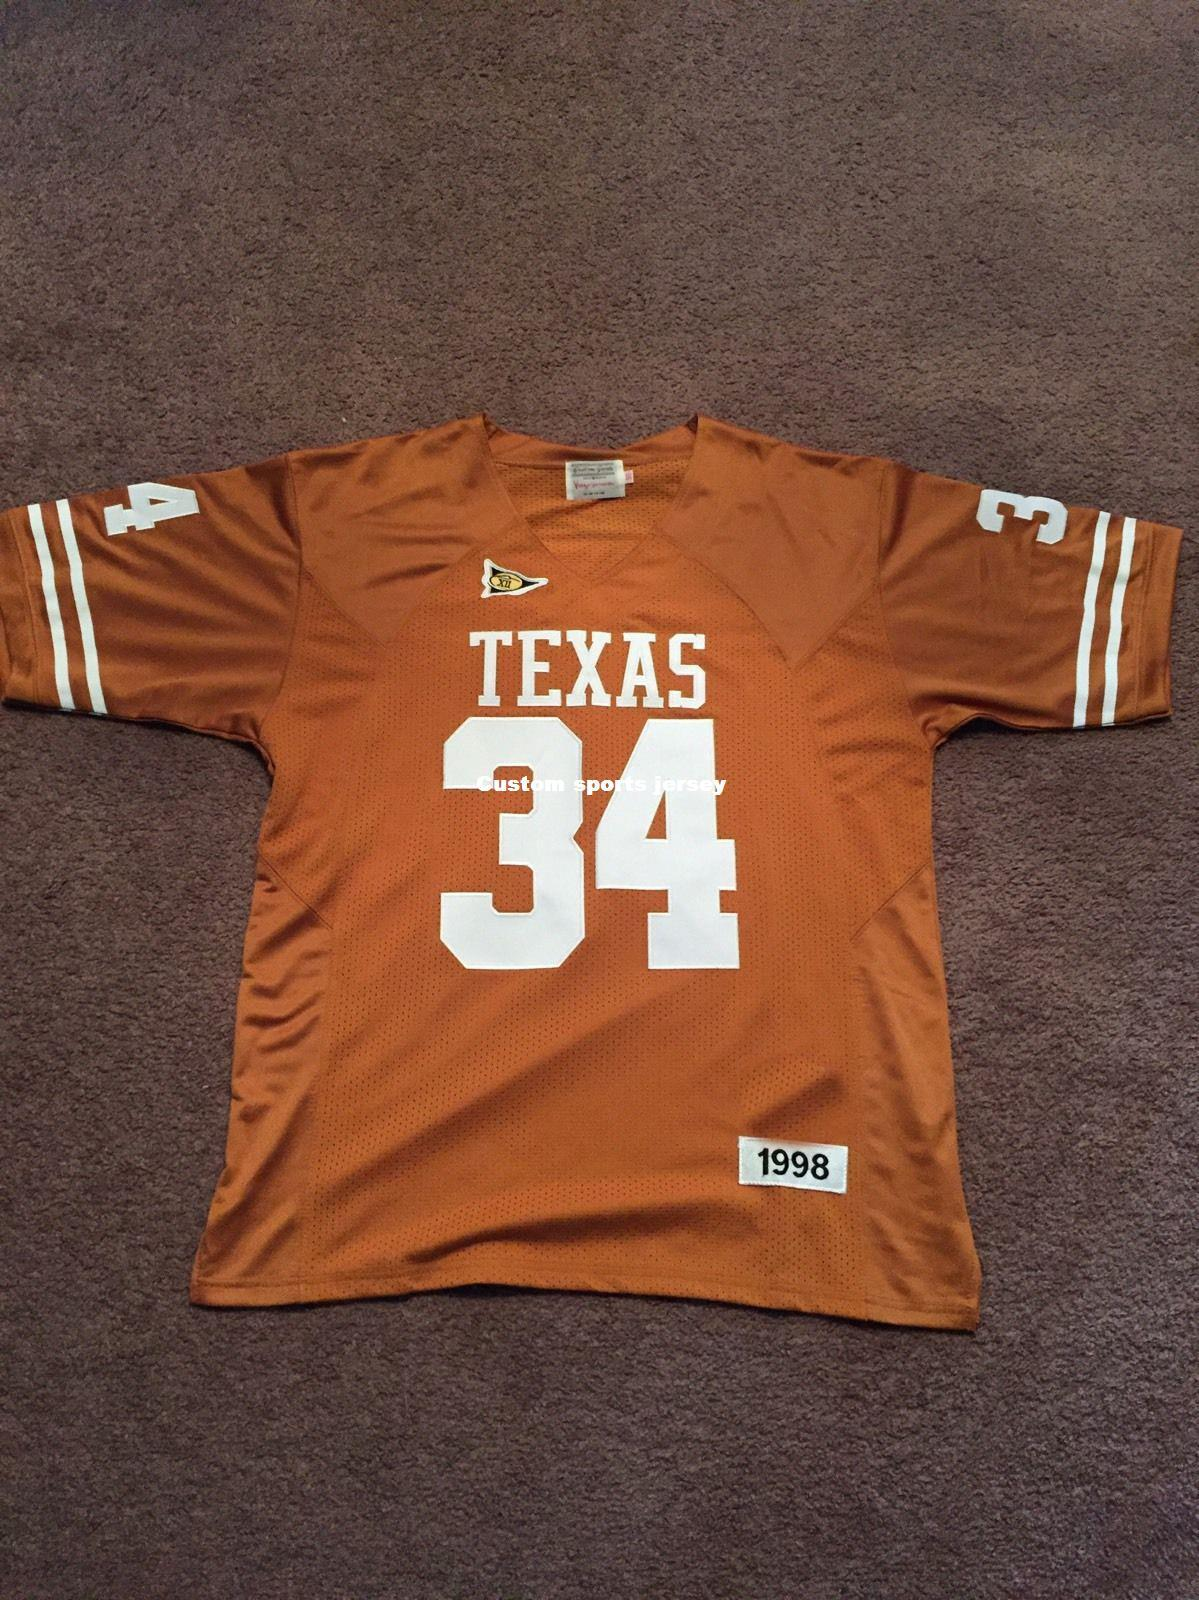 fc4fba18a18 2019 Cheap Custom 1998 Ricky Williams Texas Longhorns NCAA Football Jersey  Stitch Customize Any Number Name MEN WOMEN YOUTH XS 5XL From  Customsportsjersey